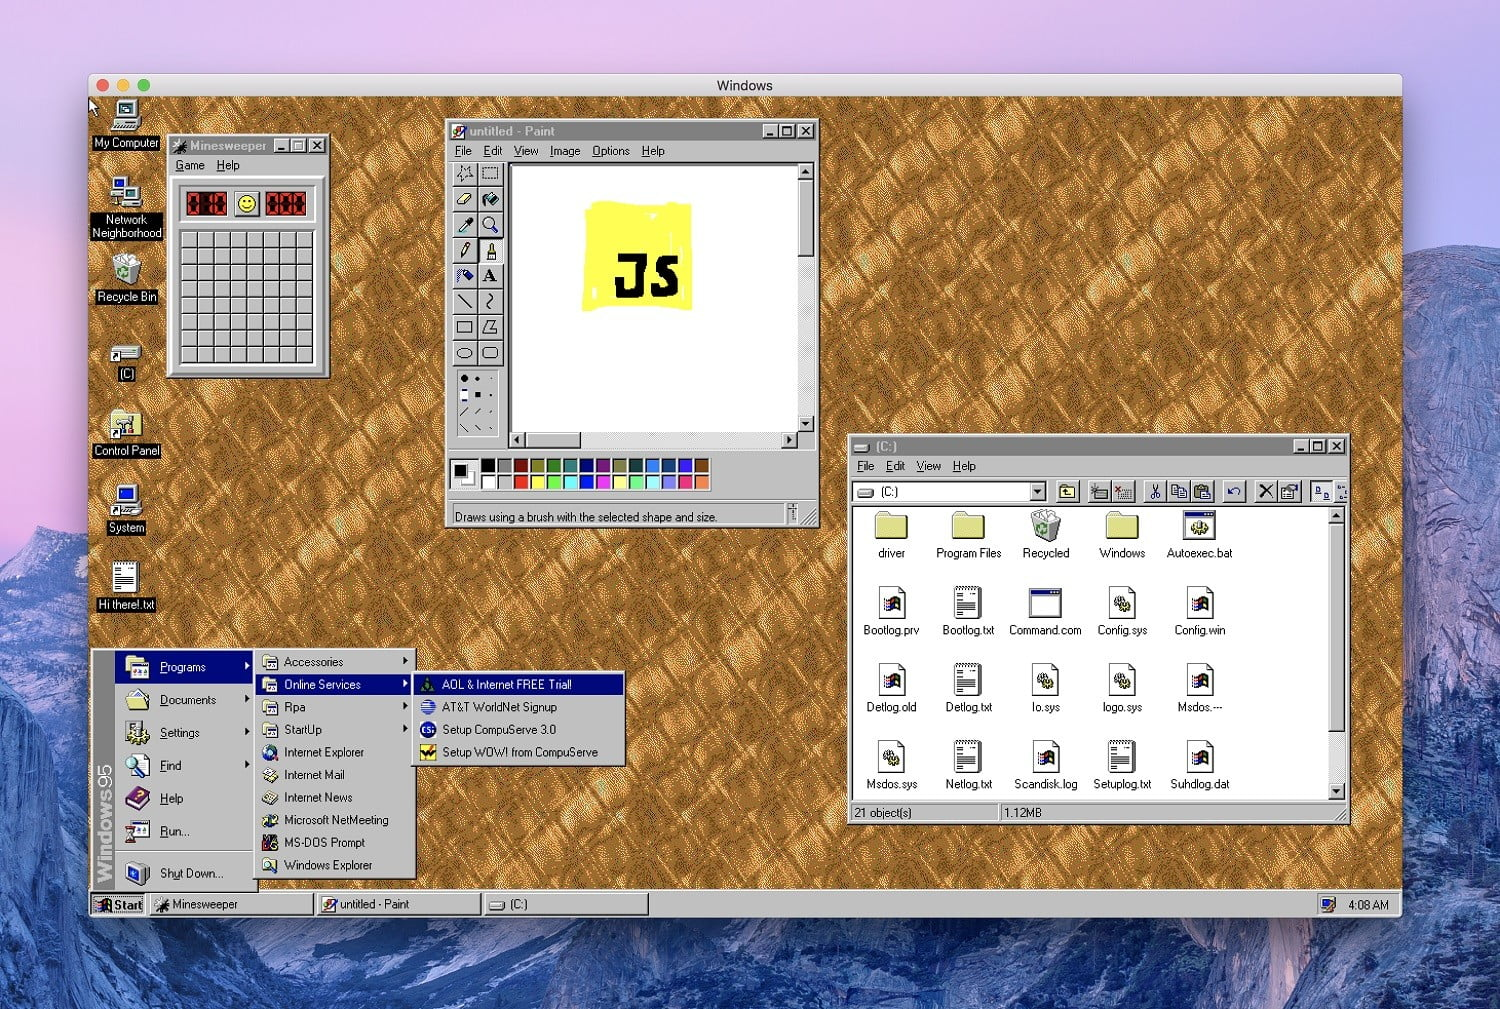 There's Now a Windows 95 App for MacOS, Windows 10, and